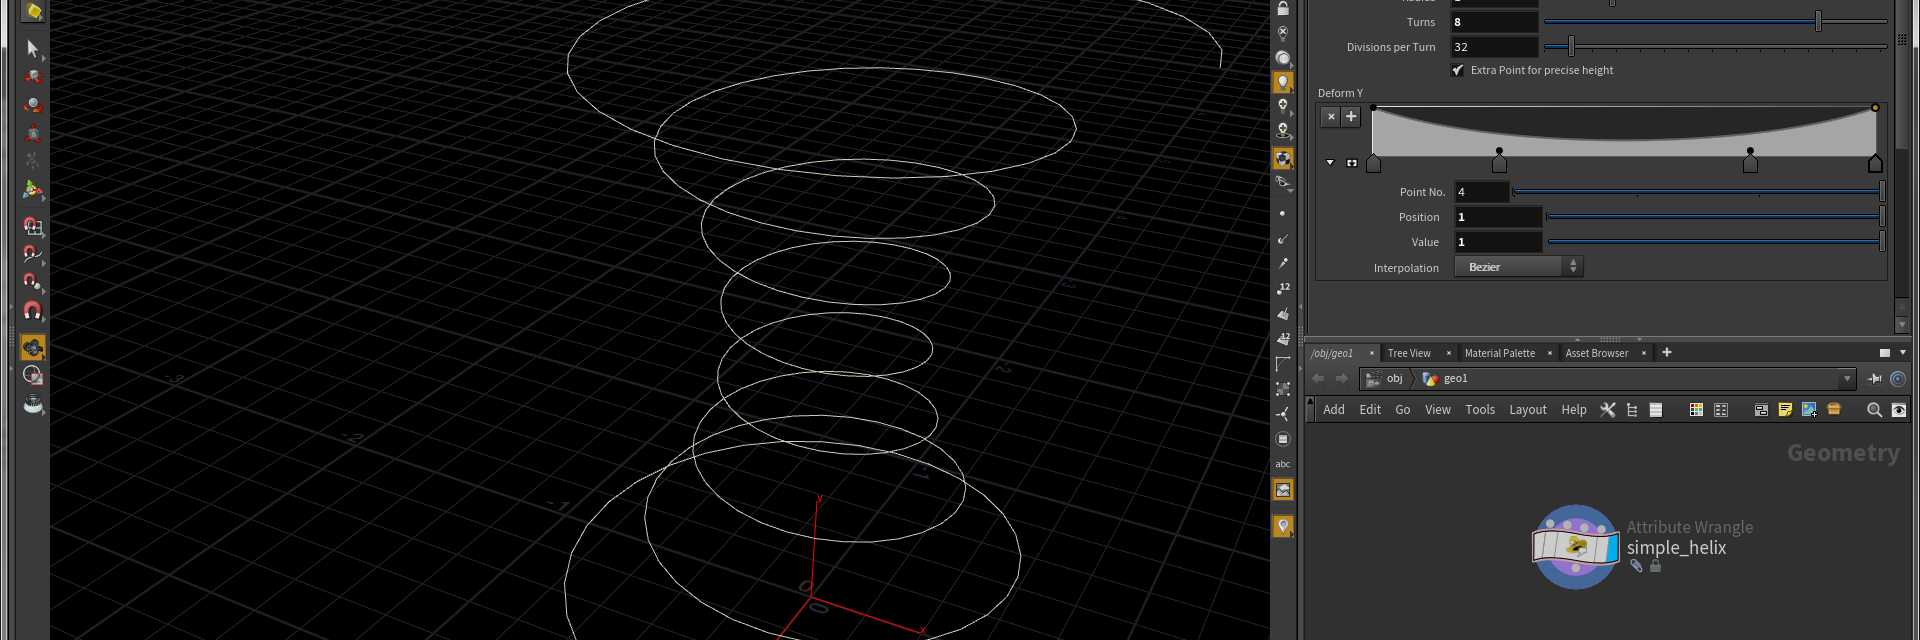 Screenshot SideFx Houdini with a ramp and properties panel